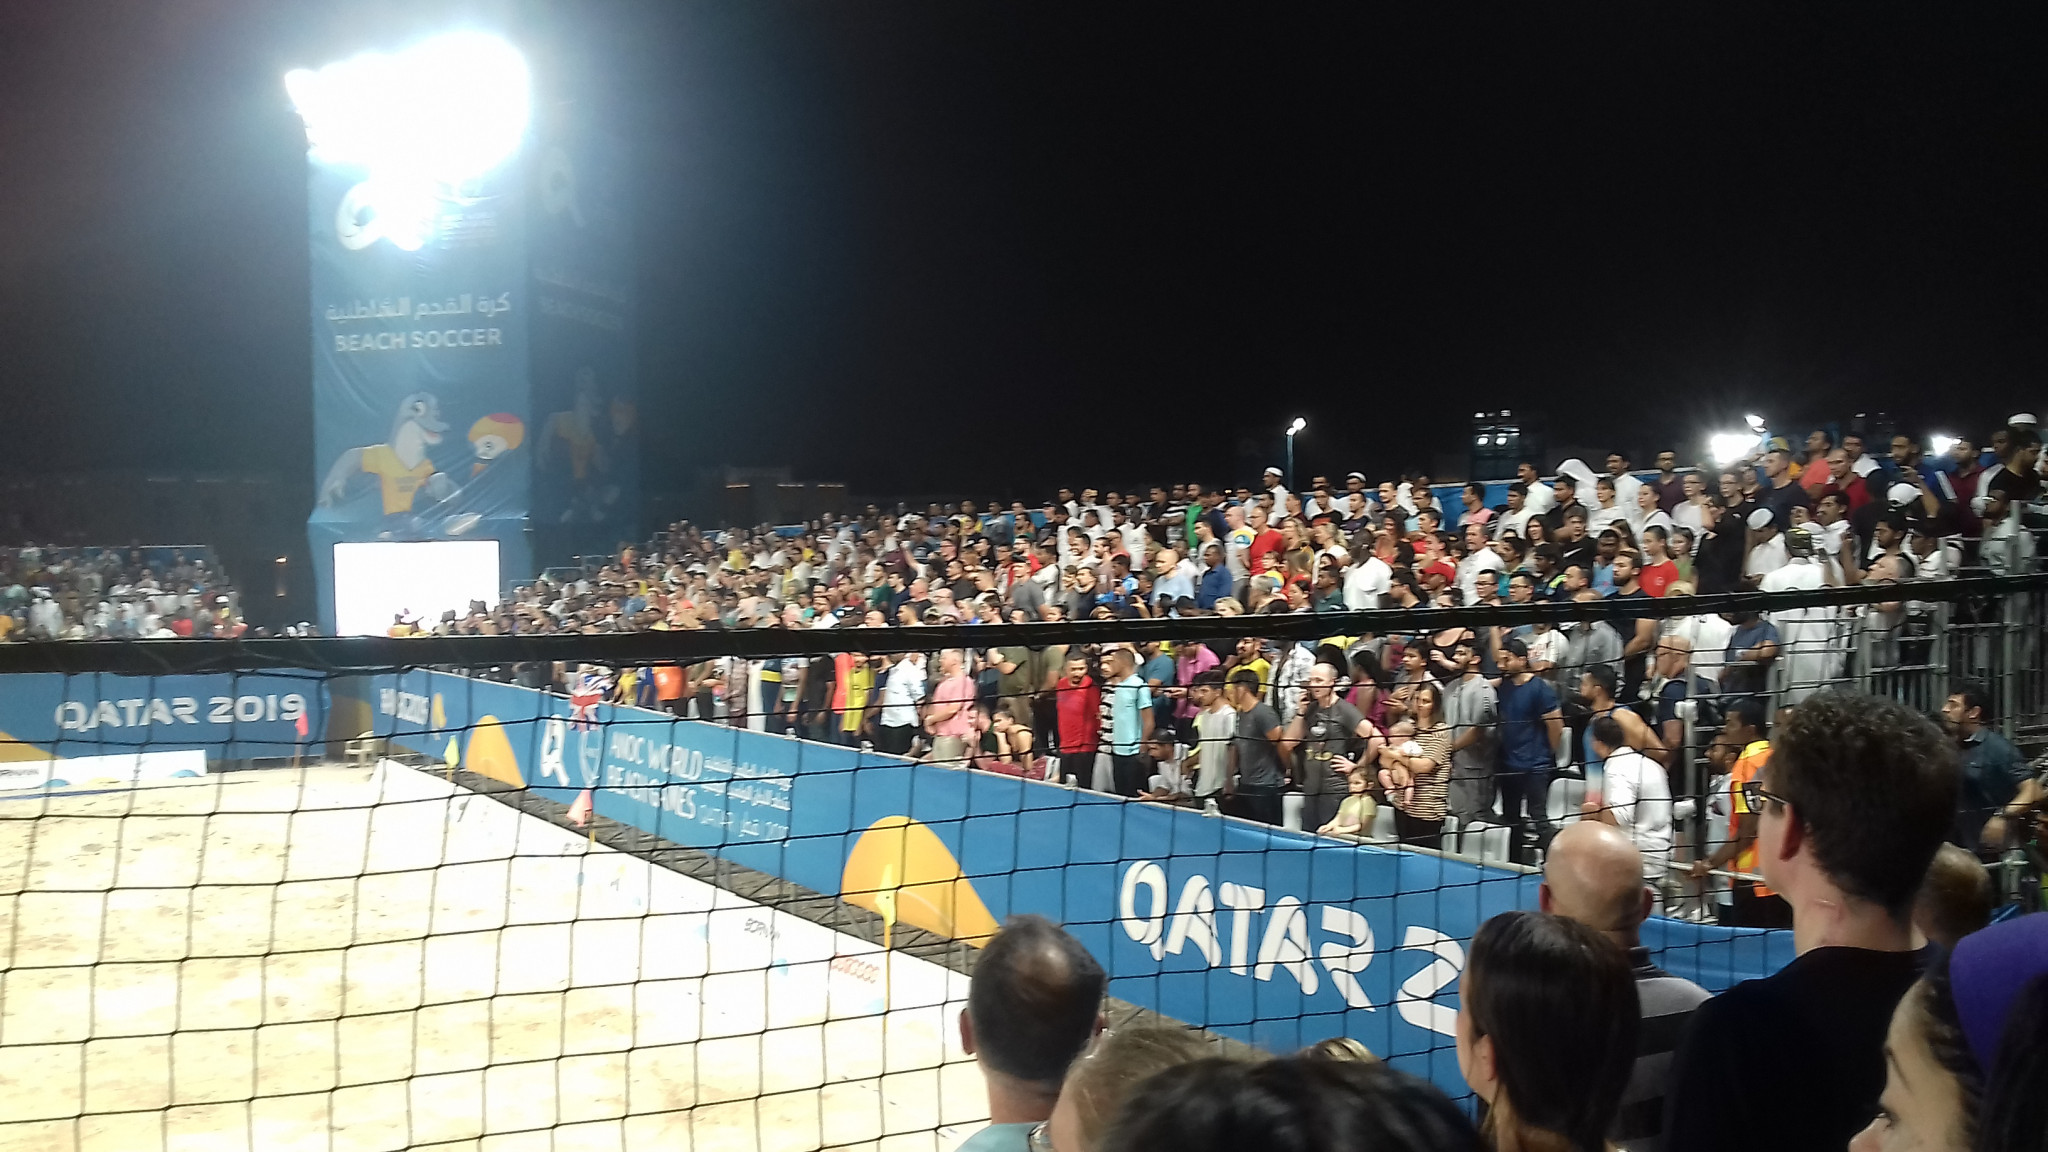 Large crowds attended the final day of the Games when several team events concluded ©ITG